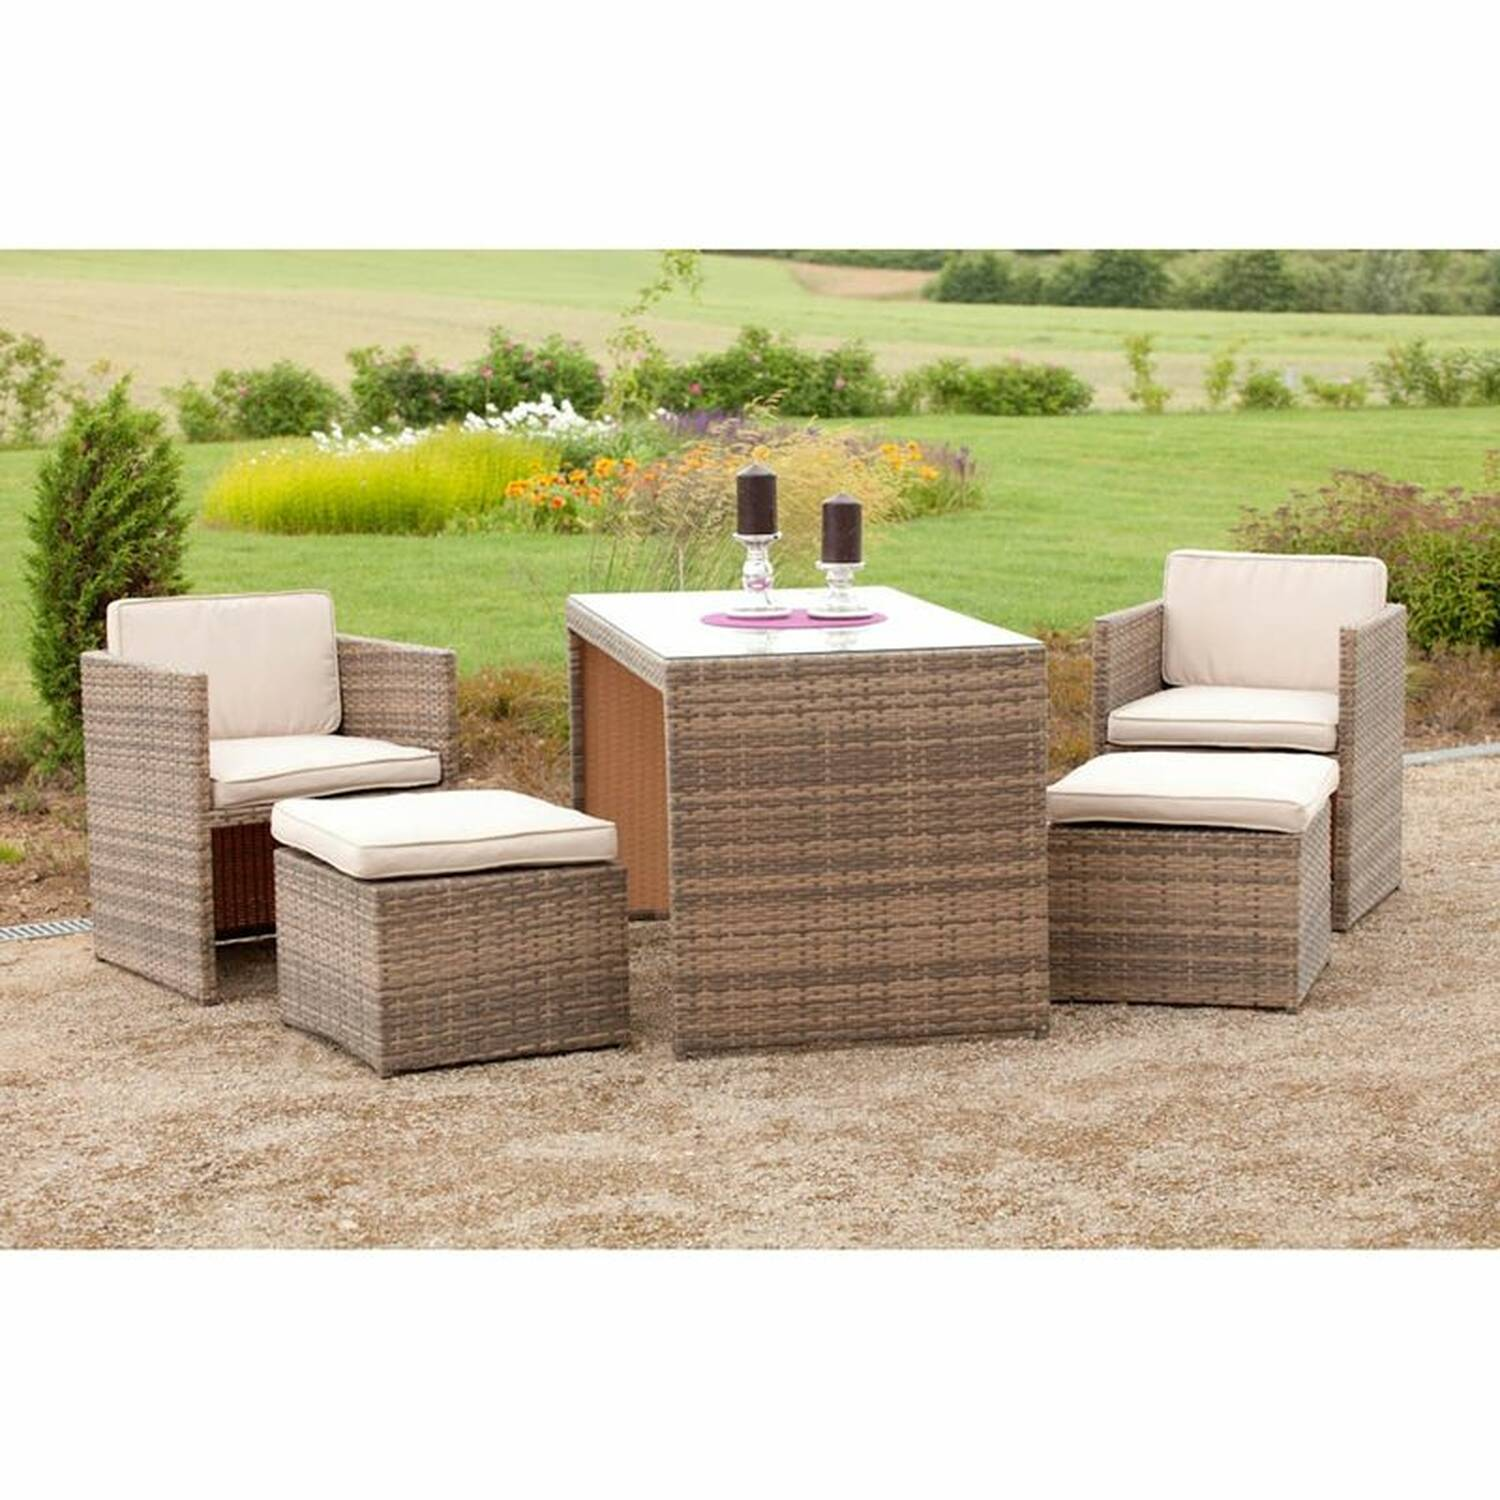 gartenm bel set umbria 29 stahl kunststoffgeflech. Black Bedroom Furniture Sets. Home Design Ideas